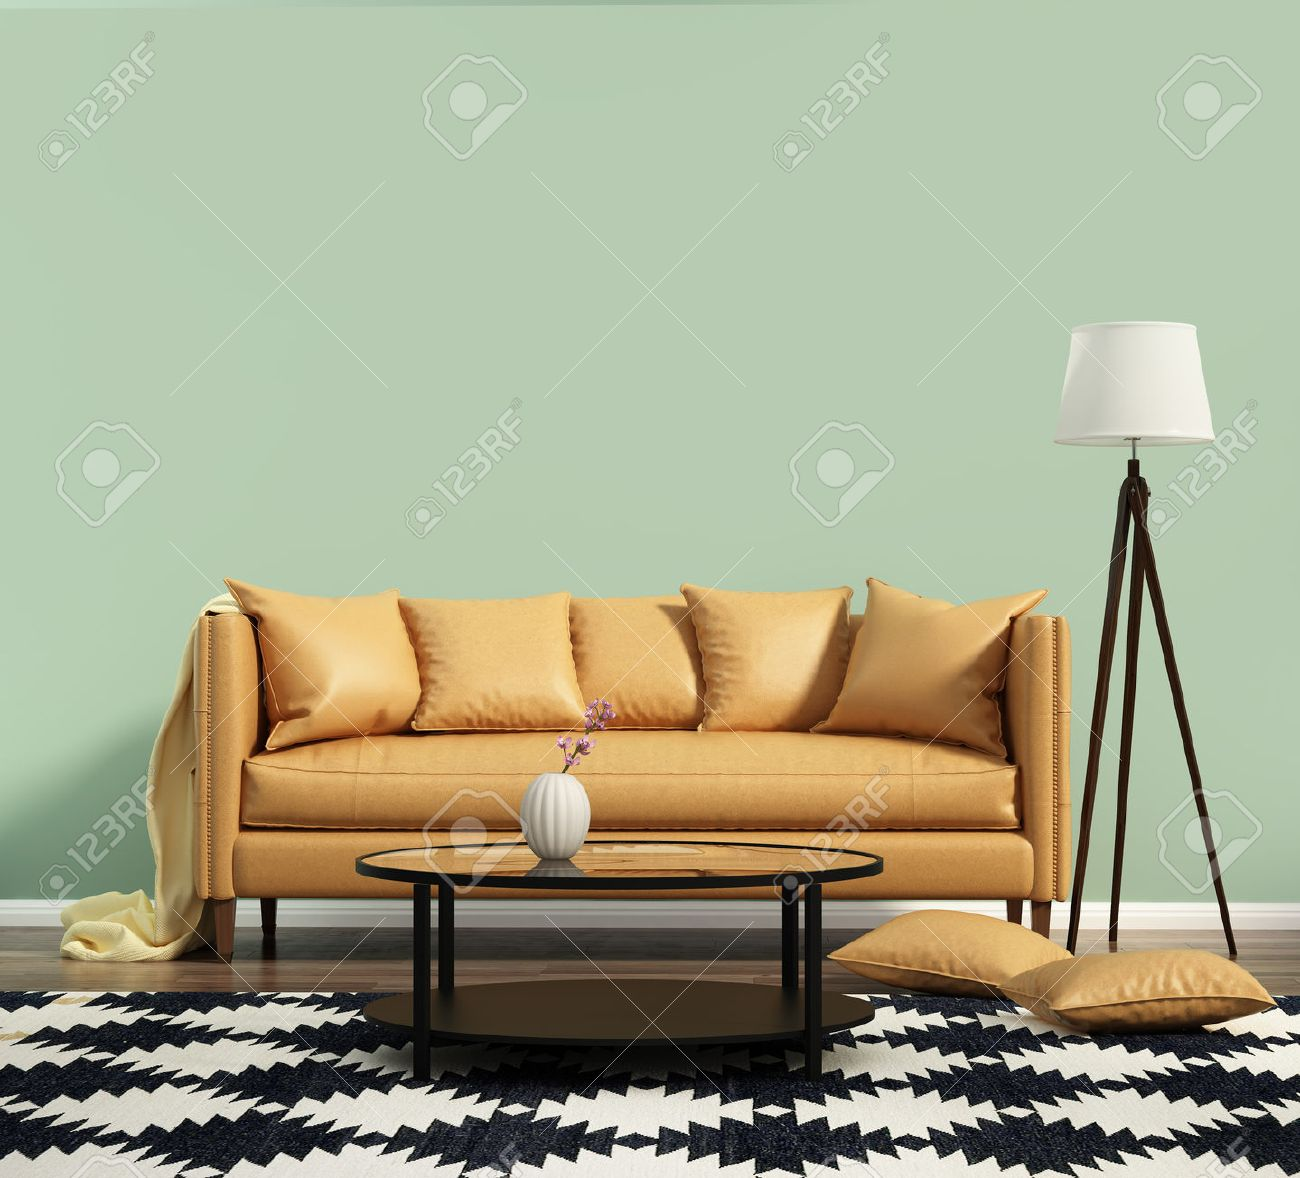 living room with a leather sofa with green wall stock photo living room with a leather sofa with green wall stock photo 41788638